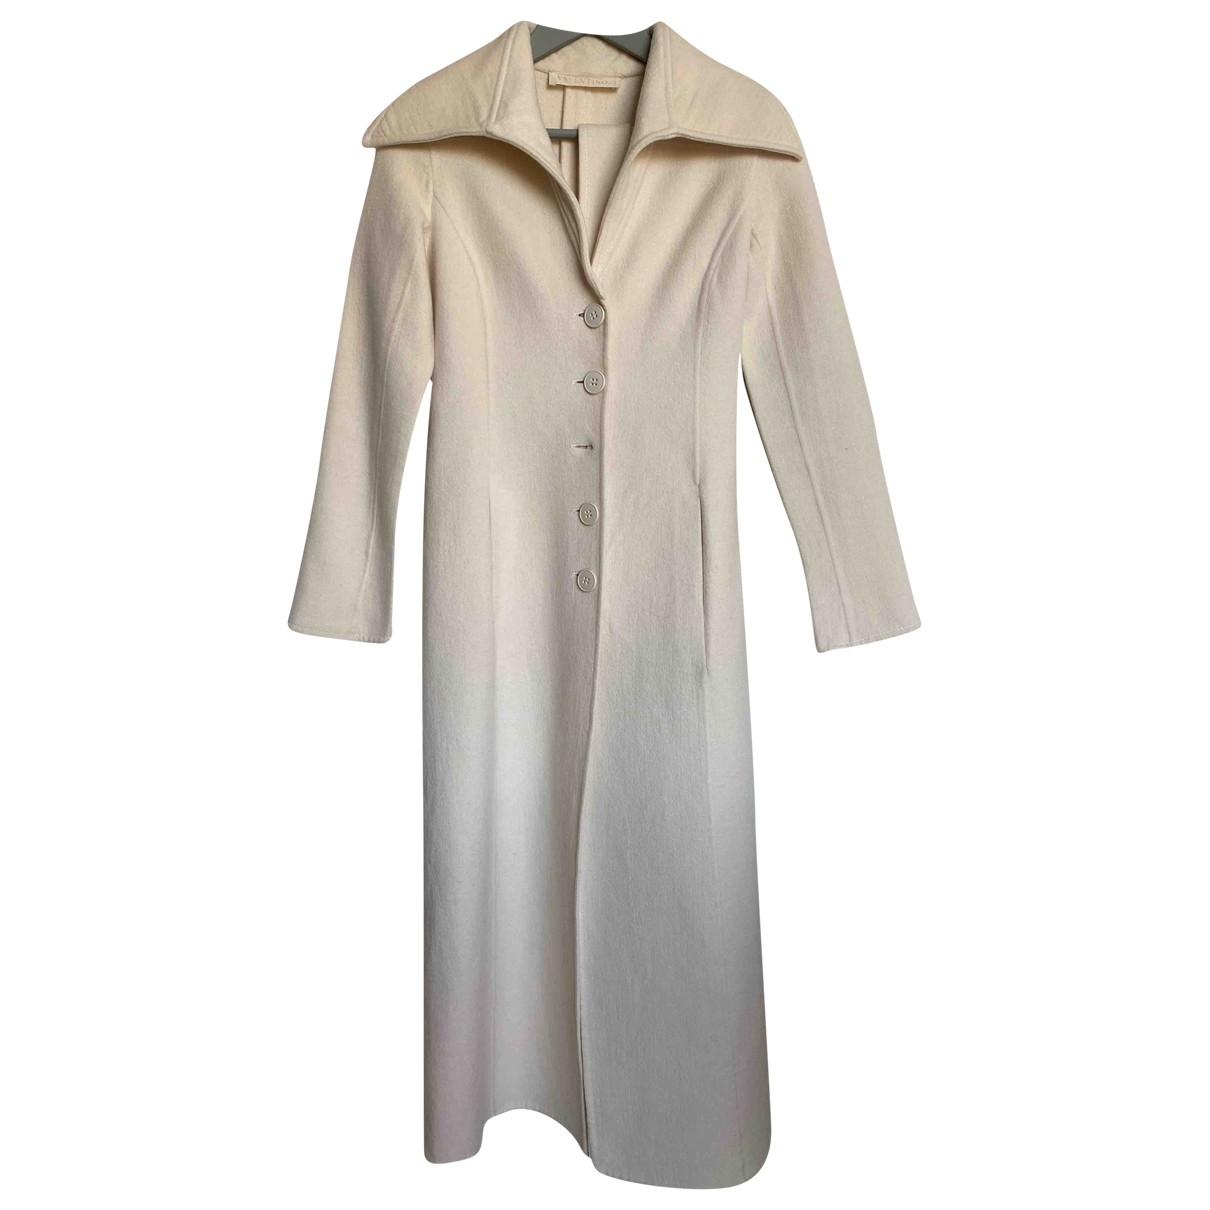 Valentino Garavani \N White Wool coat for Women 36 IT